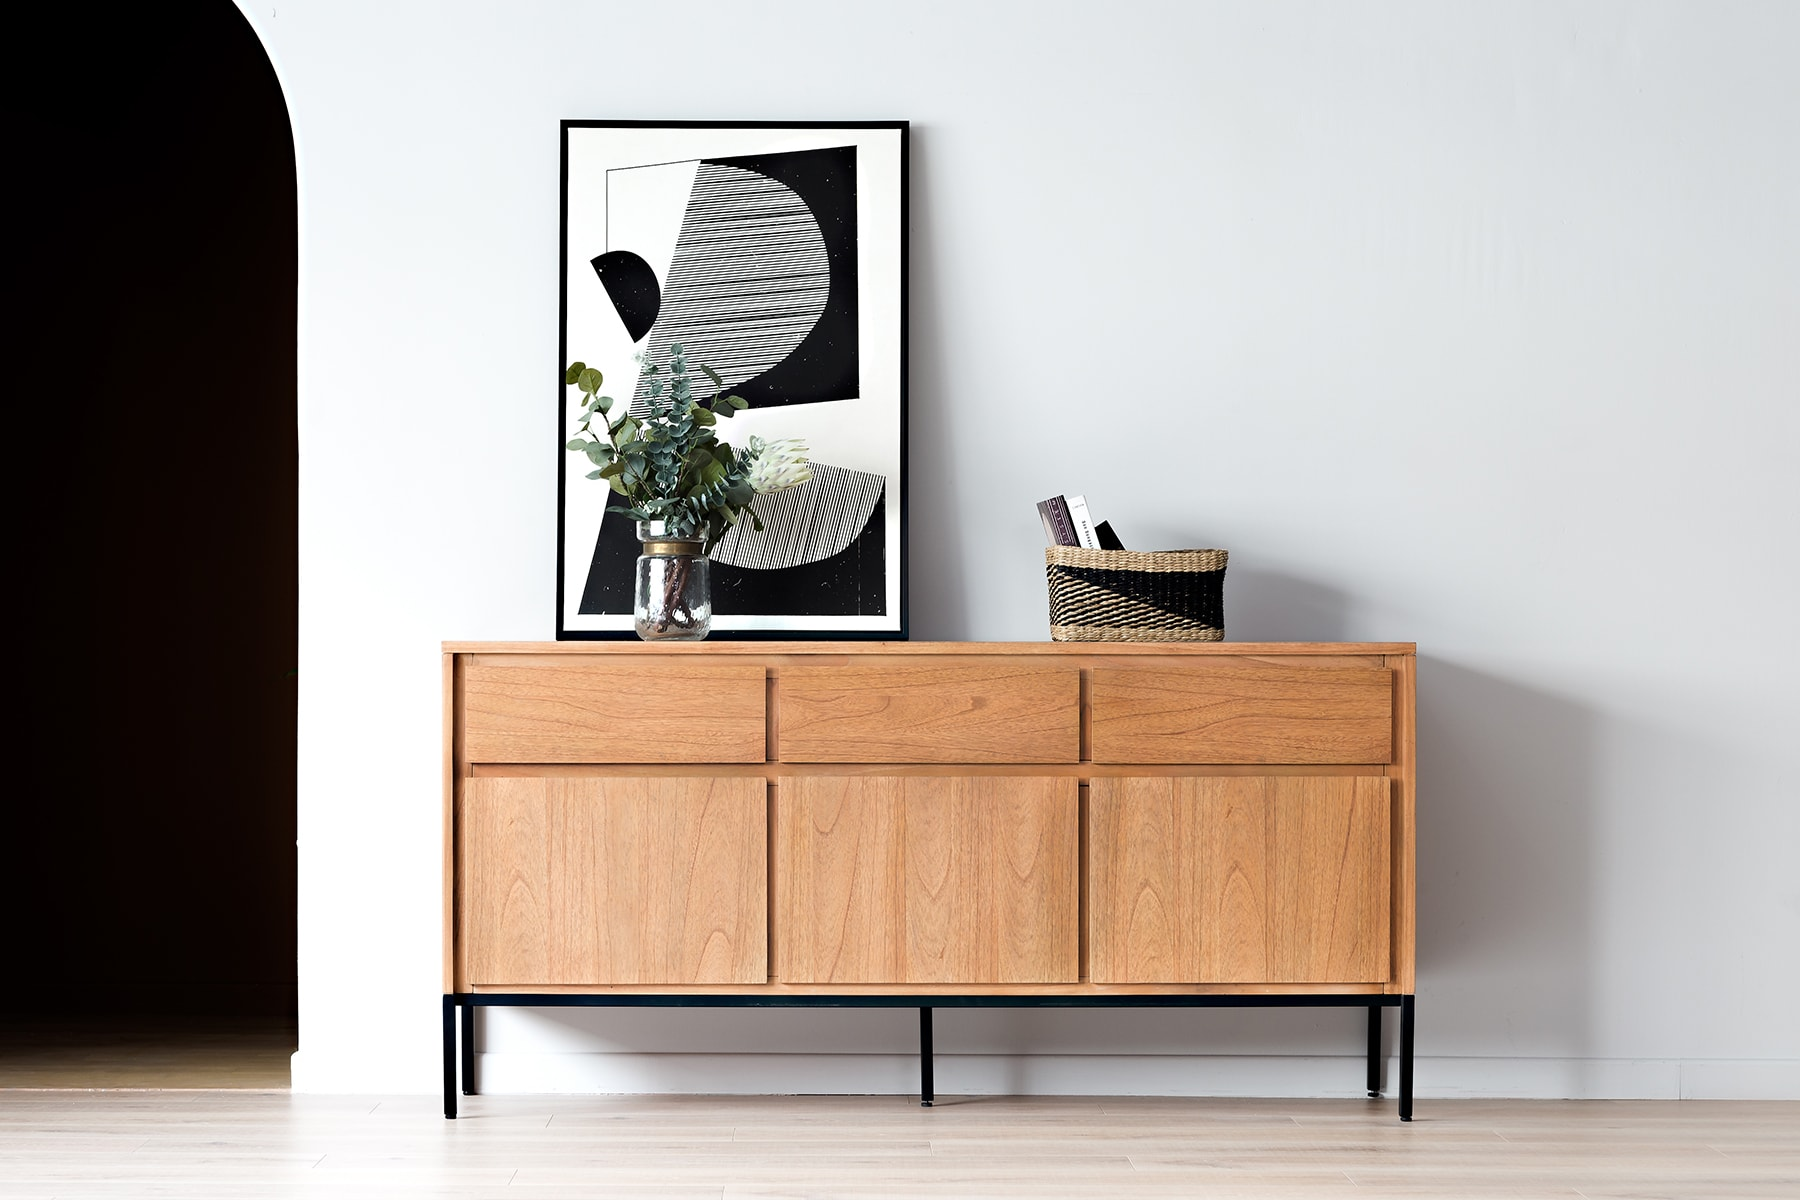 sideboard in walkway with flower vase and framed art